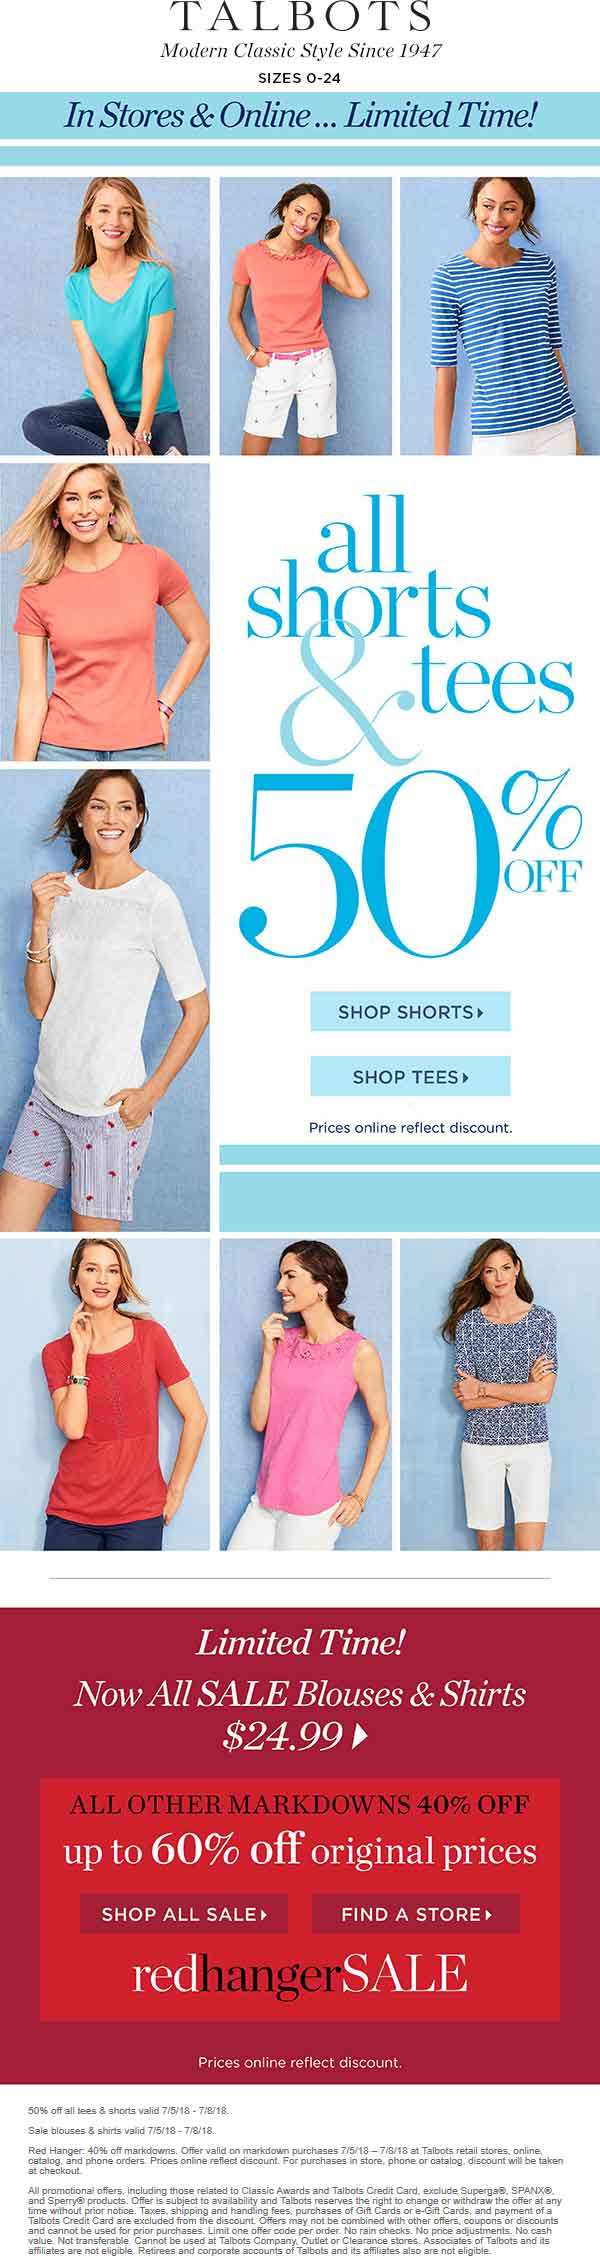 Talbots.com Promo Coupon 50% off tees & shorts at Talbots, ditto online